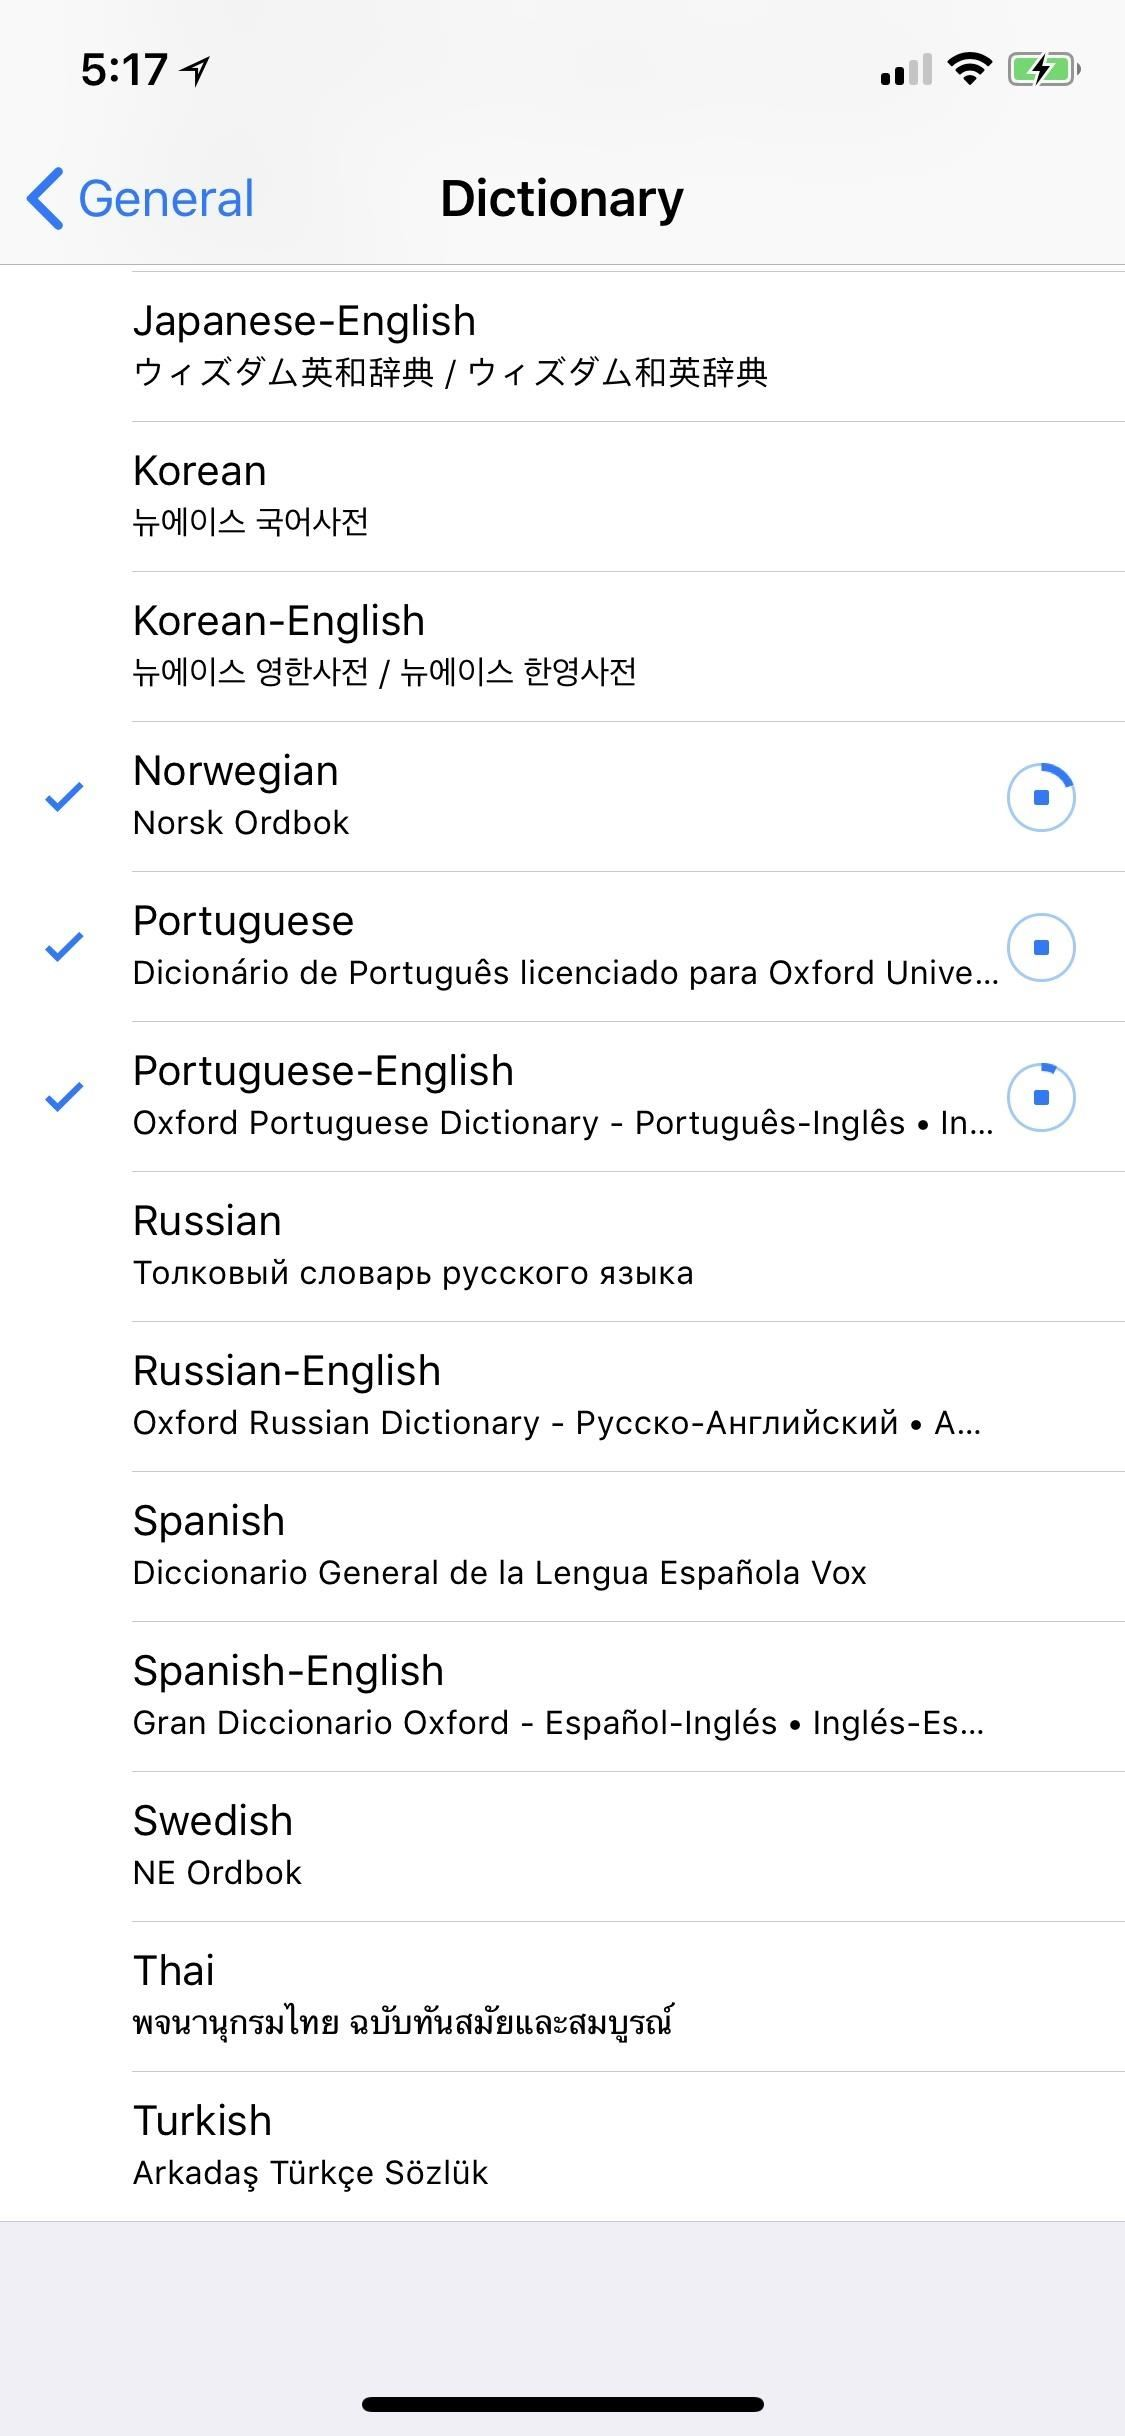 How to Add Foreign Language Dictionaries to Your iPhone to Look Up Definitions Faster